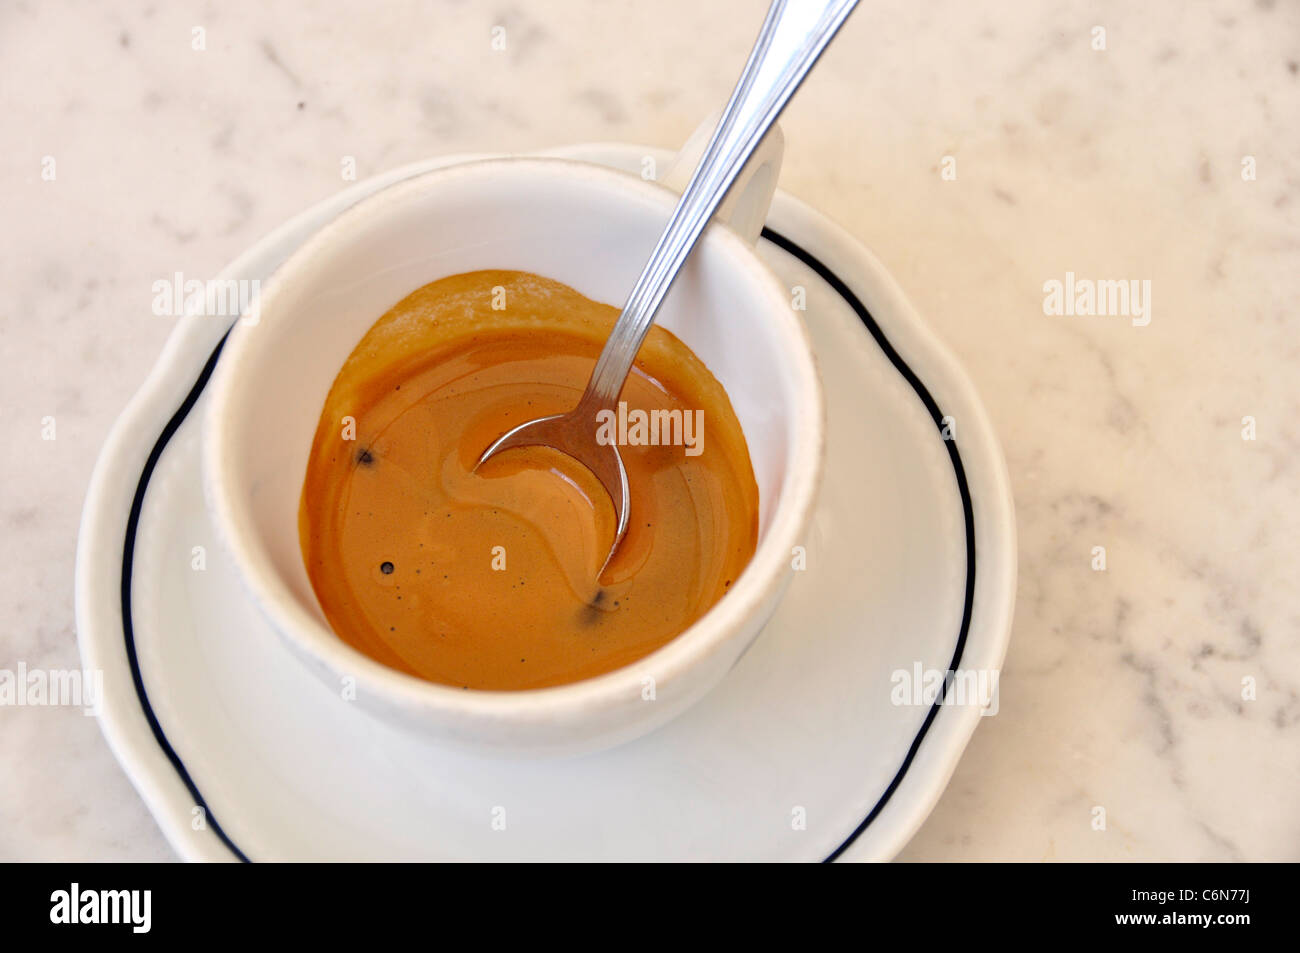 An espresso cup on a marble table - Stock Image